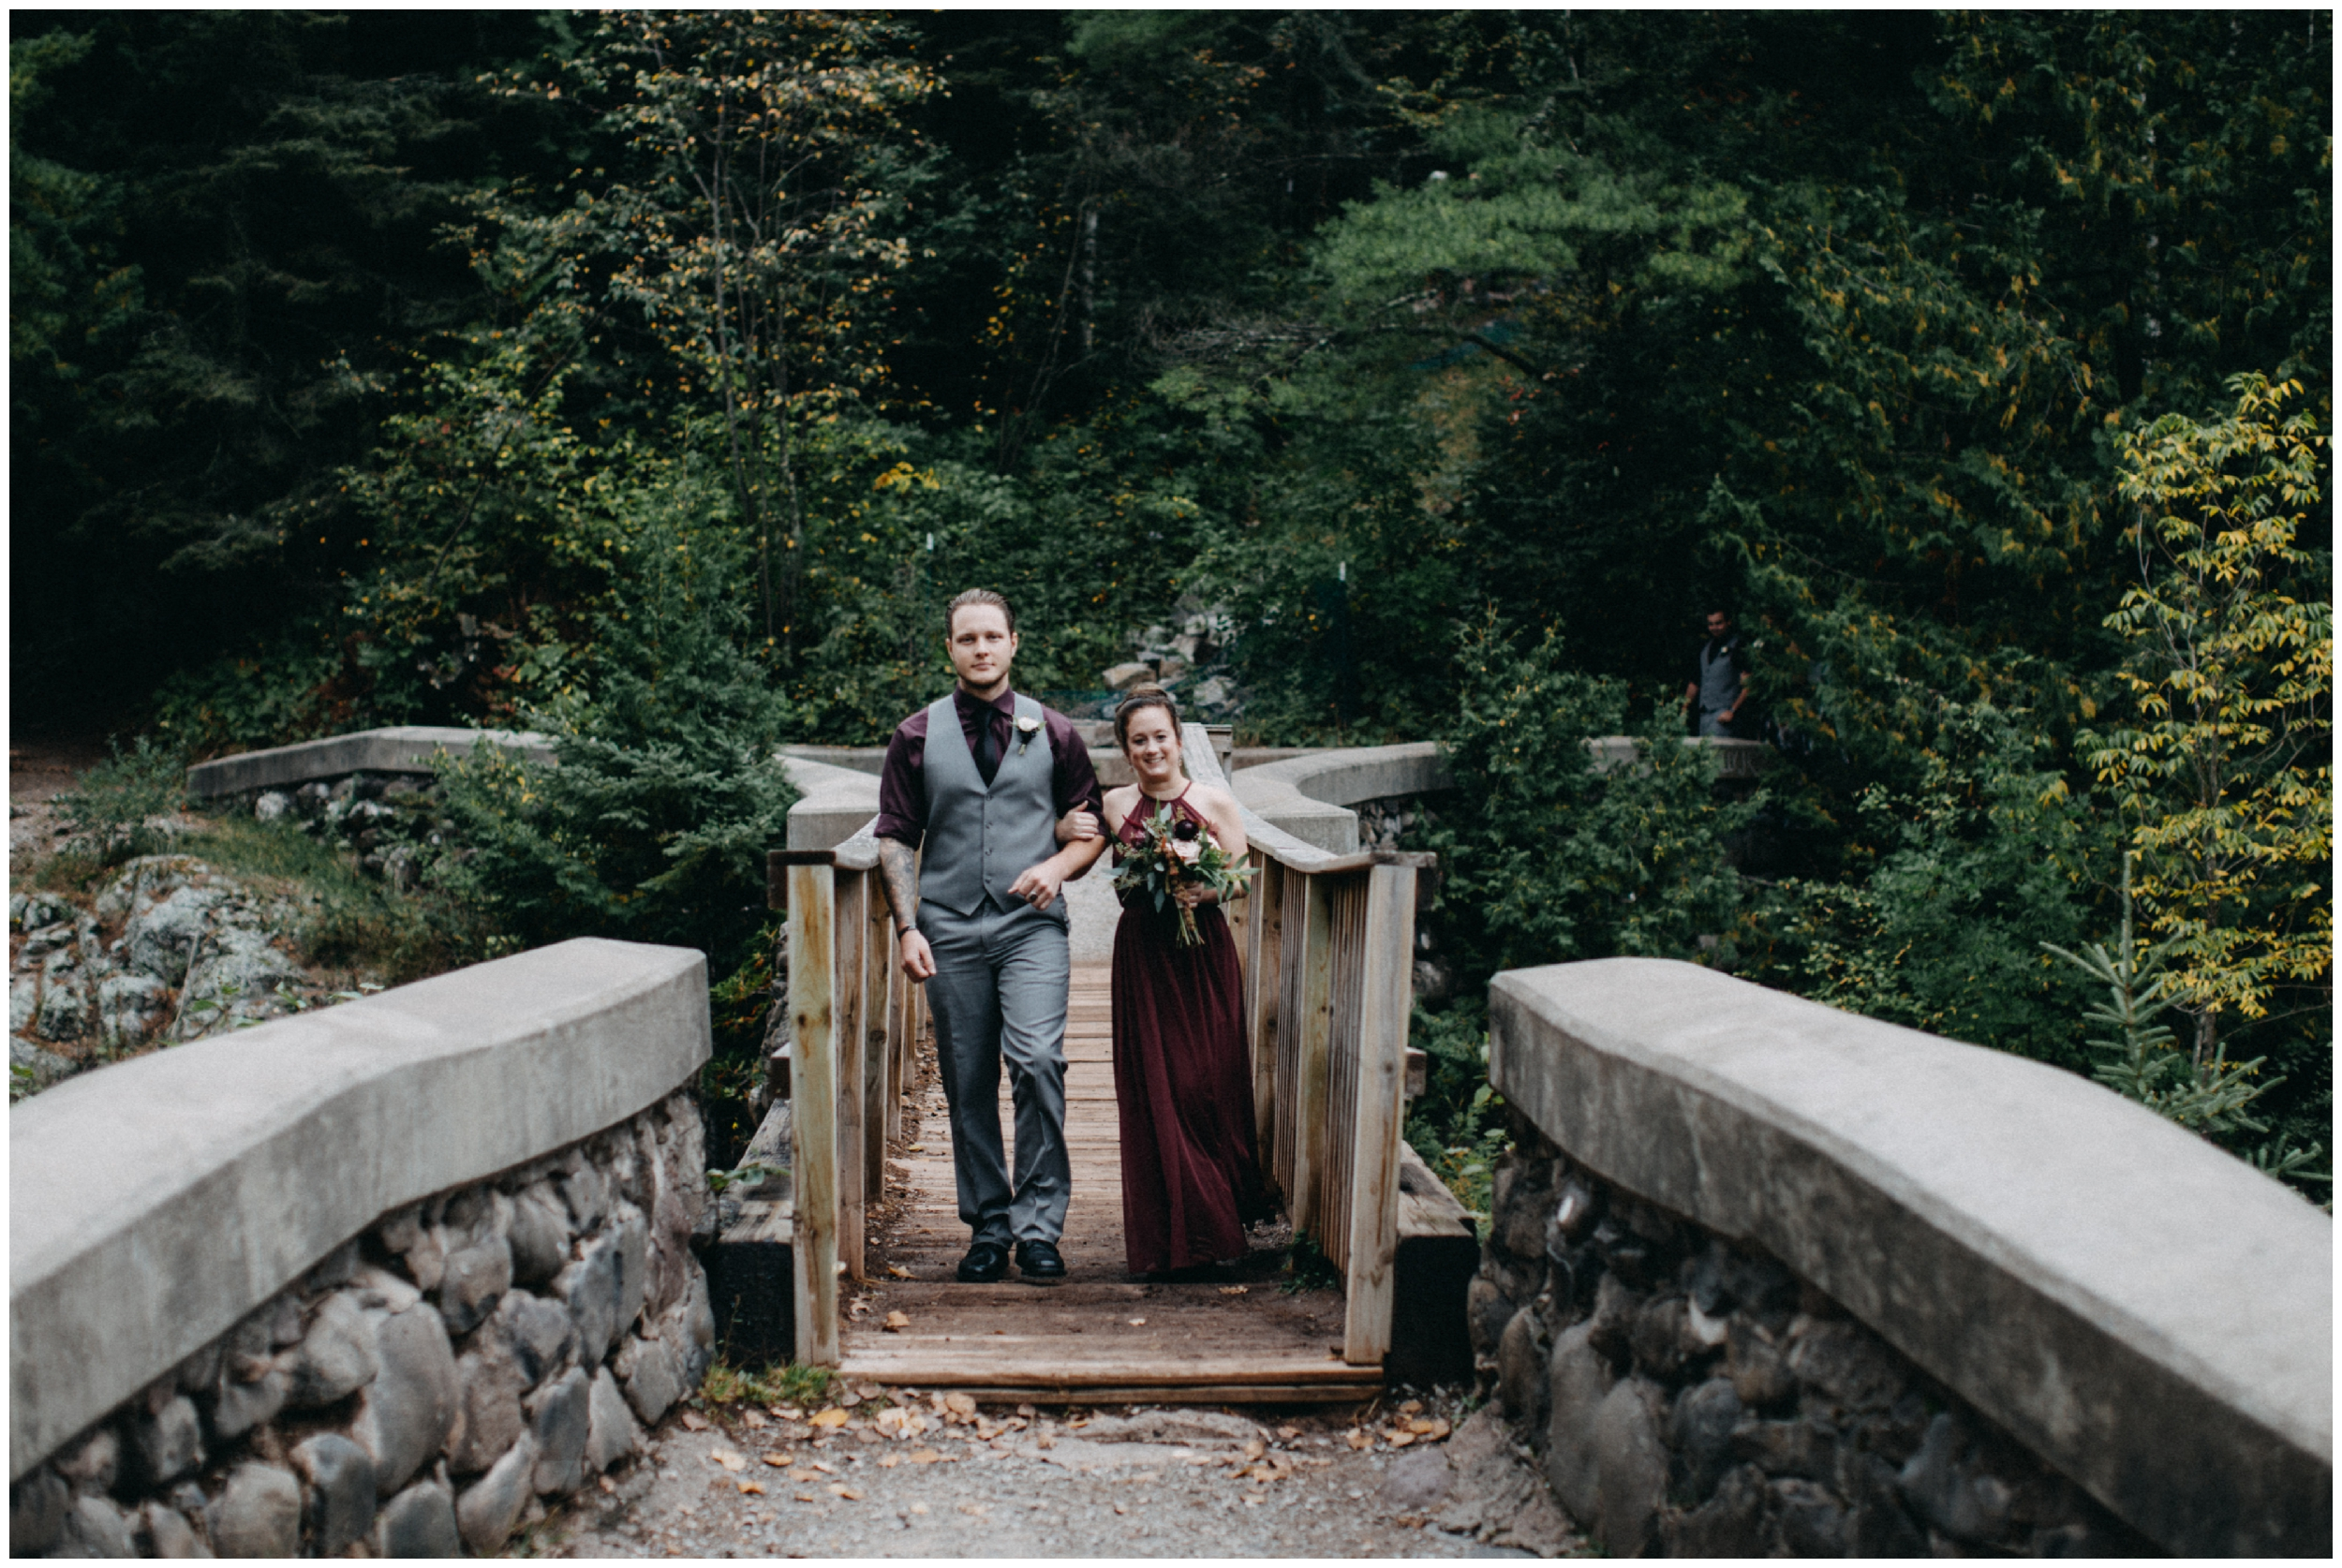 Wedding ceremony in the woods at Lester Park in Duluth MN